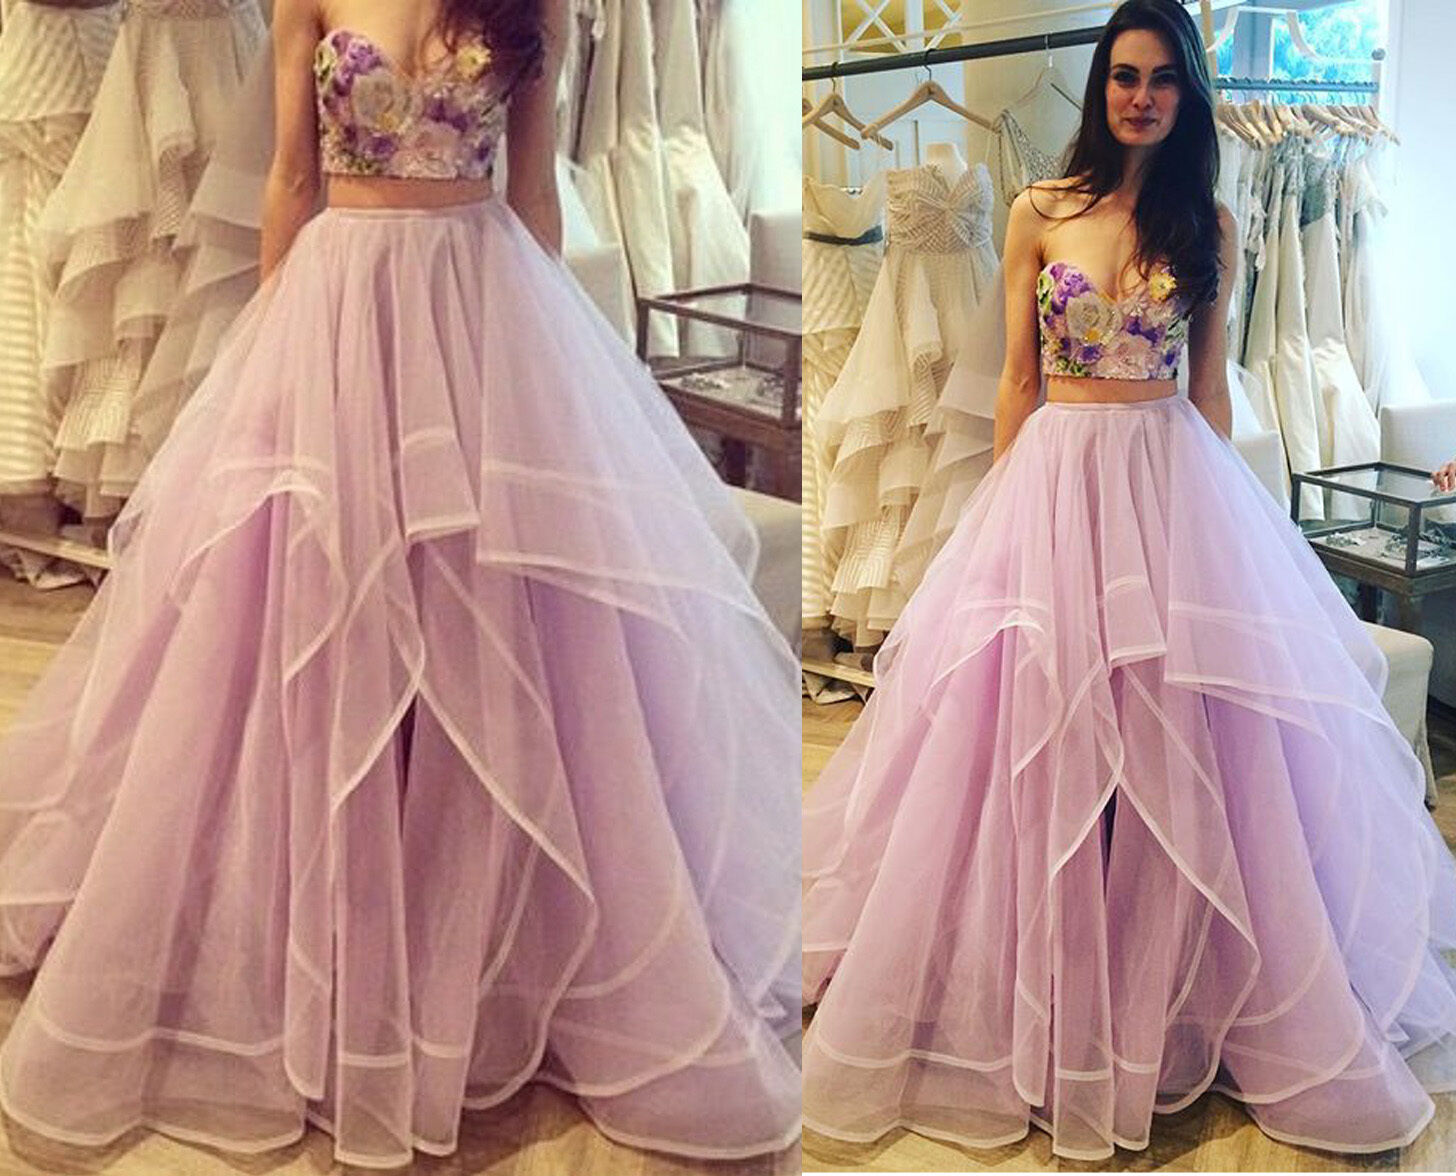 Tutu Women Long Organza Full Skirts Wedding Party Lavender Formal Ball Gown